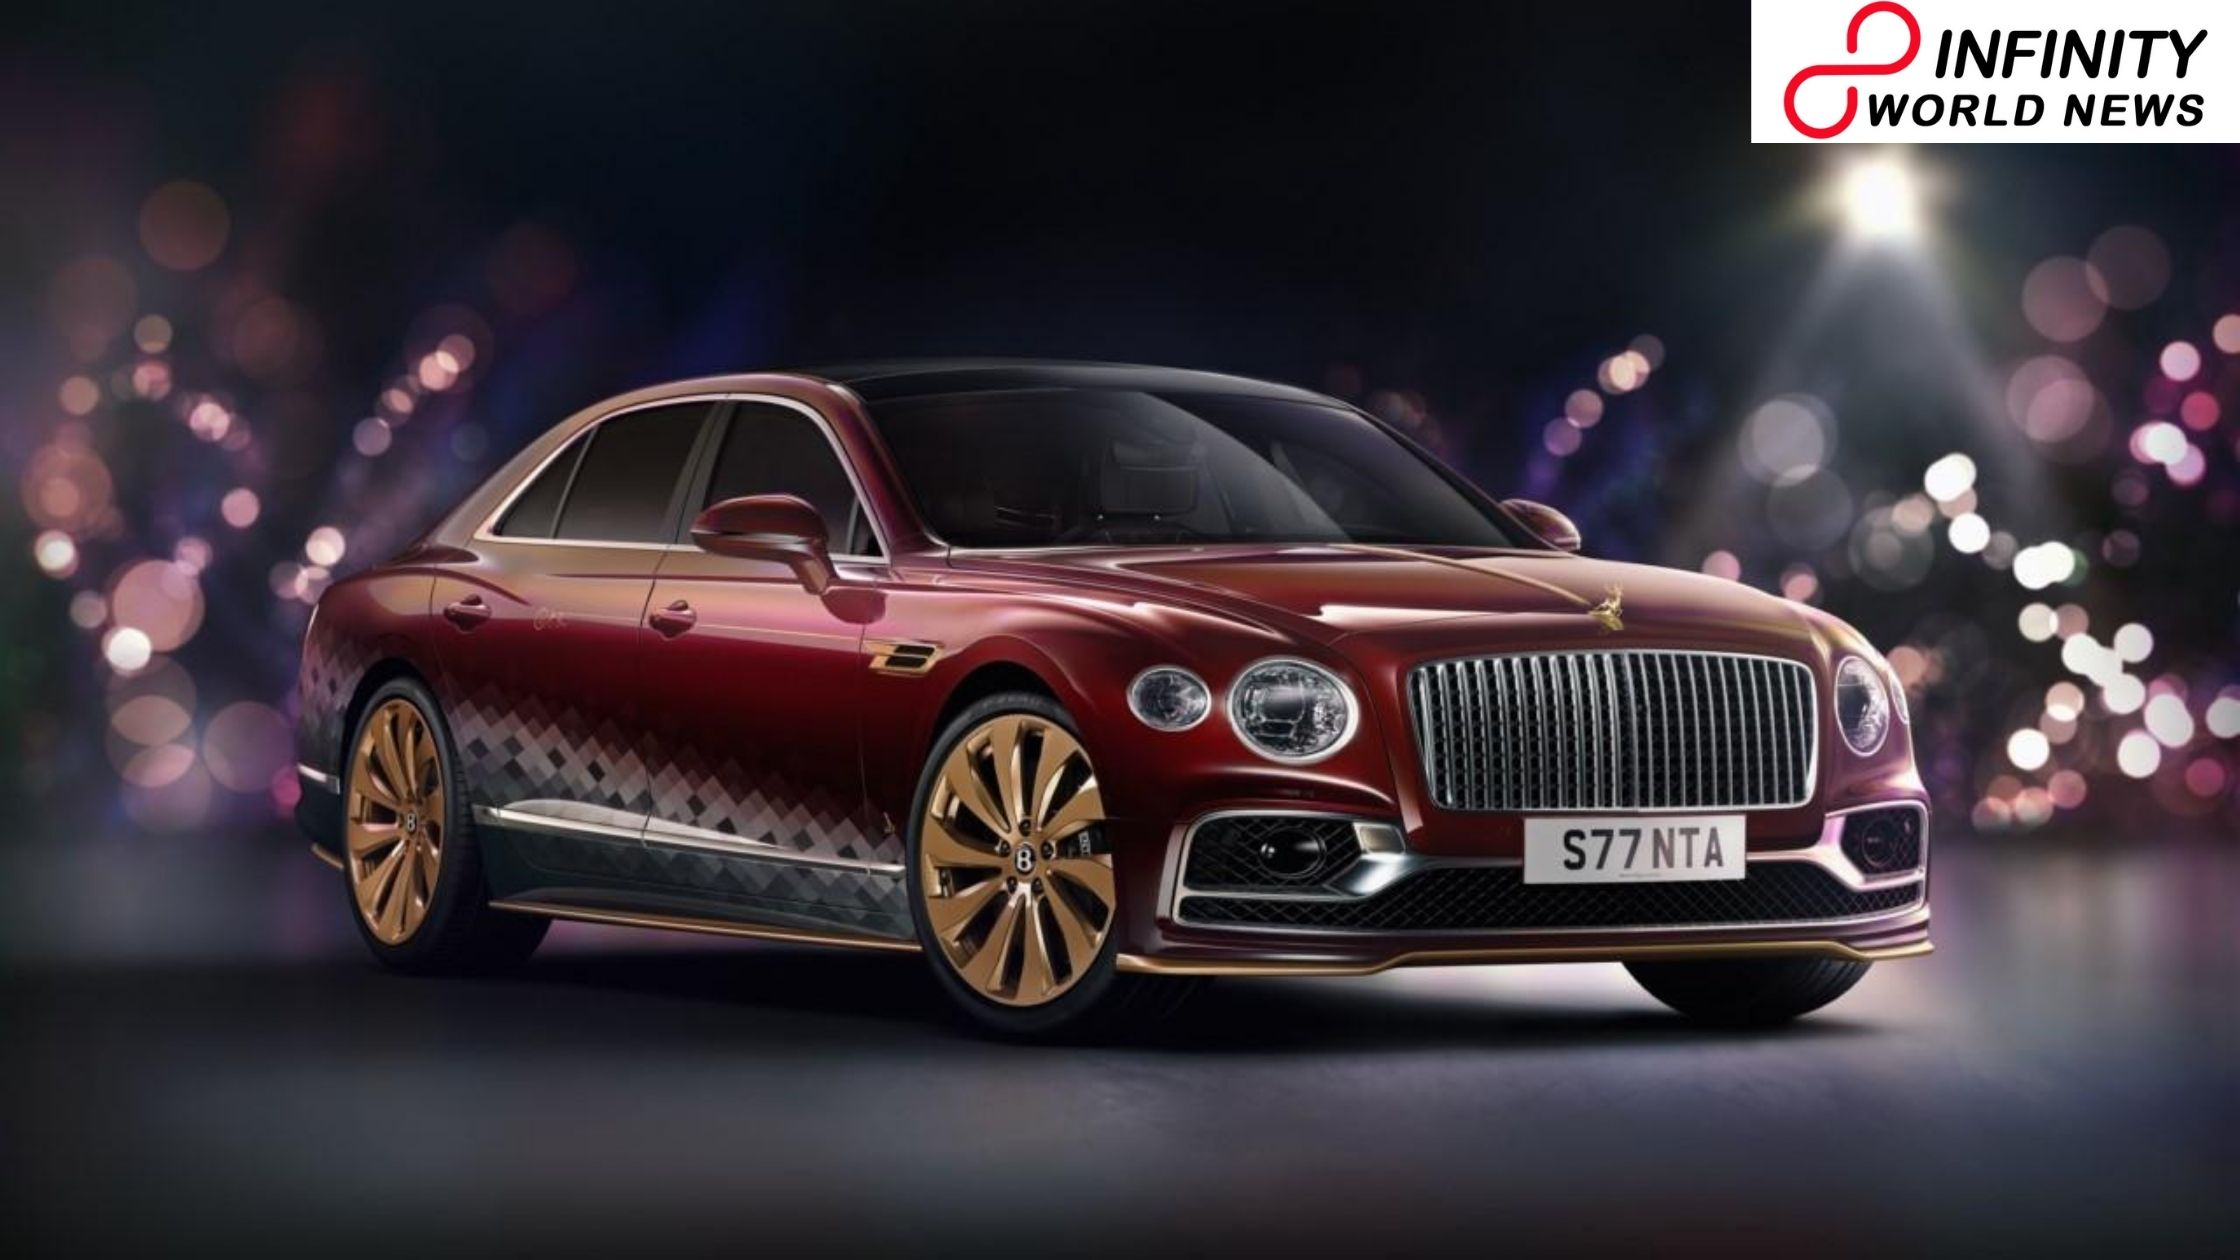 Bentley 'Reindeer Eight' Special Christmas Model Revealed to Glorify 2020 Coming to an End